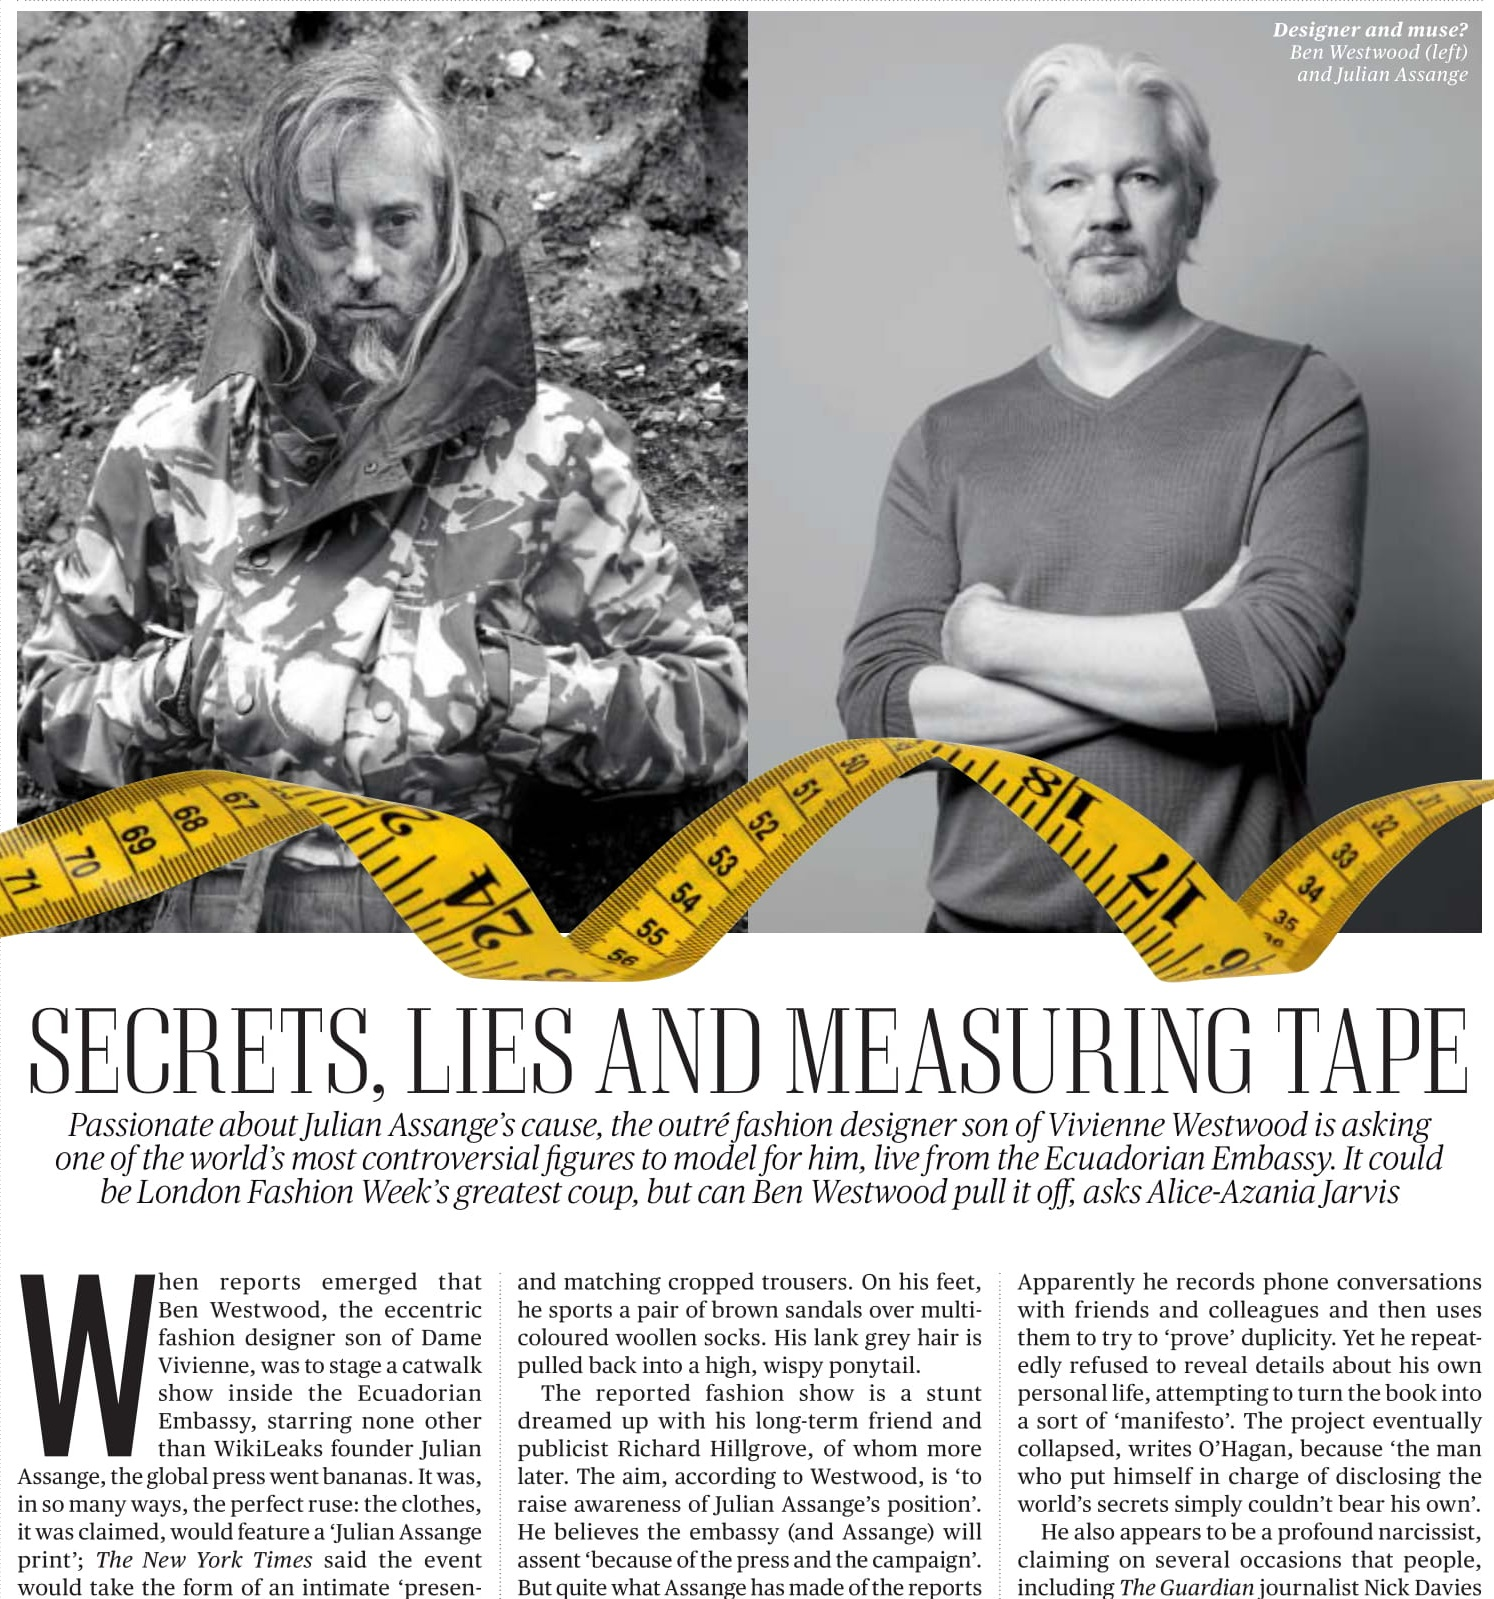 Secrets, lies and measuring tape - When reports emerged that Ben Westwood, the eccentric fashion designer son of Dame Vivienne, was to stage a catwalk show inside the Ecuadorian Embassy, starring none other than WikiLeaks founder Julian Assange, the global press went bananas. It was, in so many ways, the perfect ruse: the clothes, it was claimed, would feature a 'Julian Assange print'; The New York Times said the event would take the form of an intimate 'presentation/cocktail party'. George Clooney and his fiancée Amal Alamuddin were rumoured to be attending. It was set to be London Fashion Week's hottest ticket.There is only one problem. Westwood does not know Assange from Adam…READ MORE